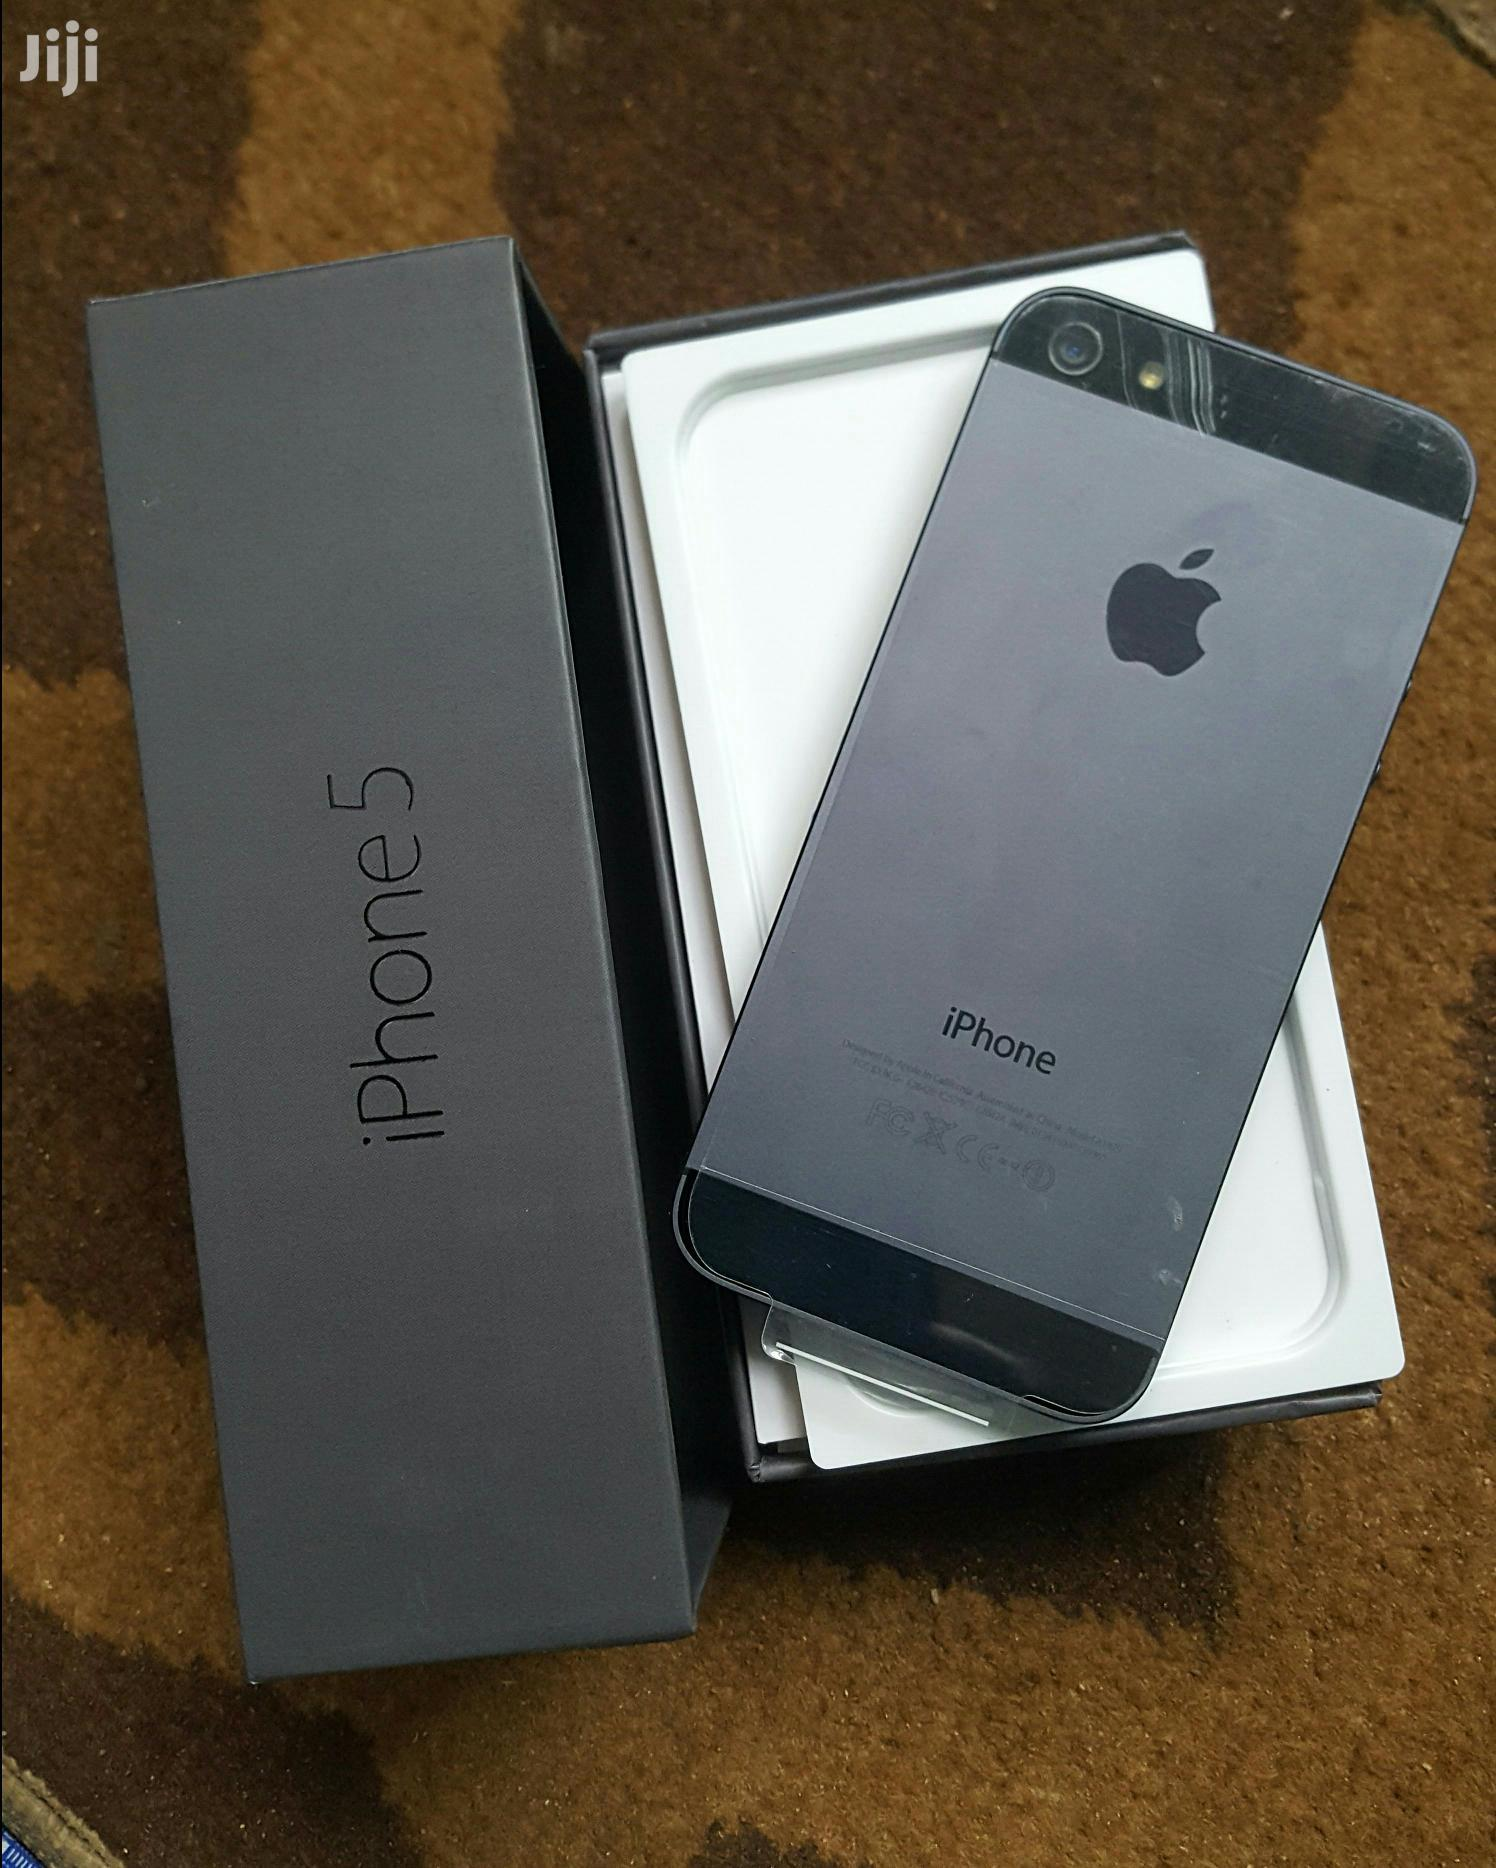 Iphone 5 Gray 32 GB | Mobile Phones for sale in Achimota, Greater Accra, Ghana